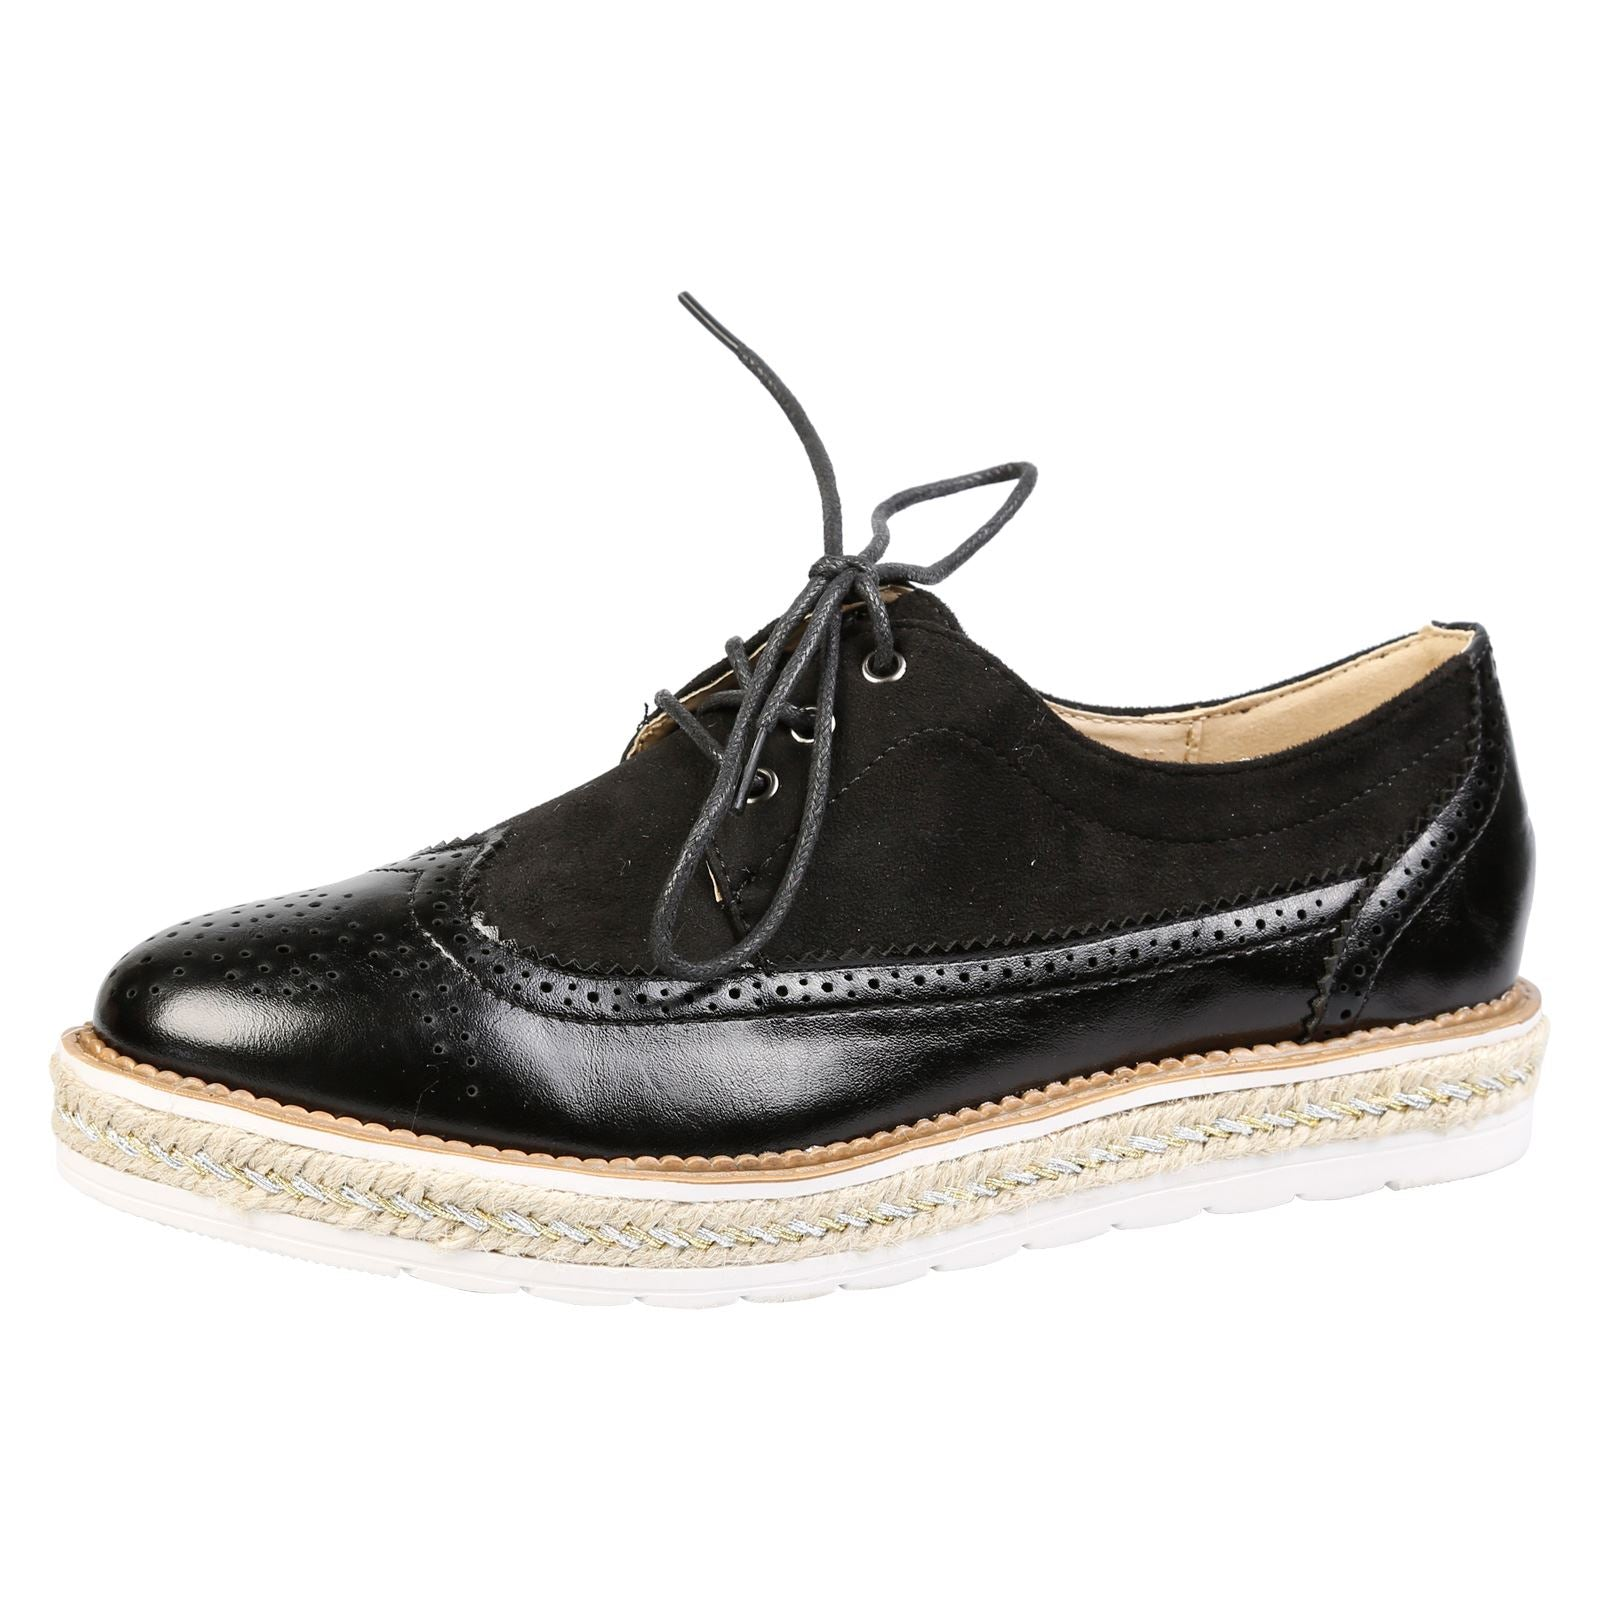 Regina Two Tone Flatform Brogues in Black Faux Leather & Suede